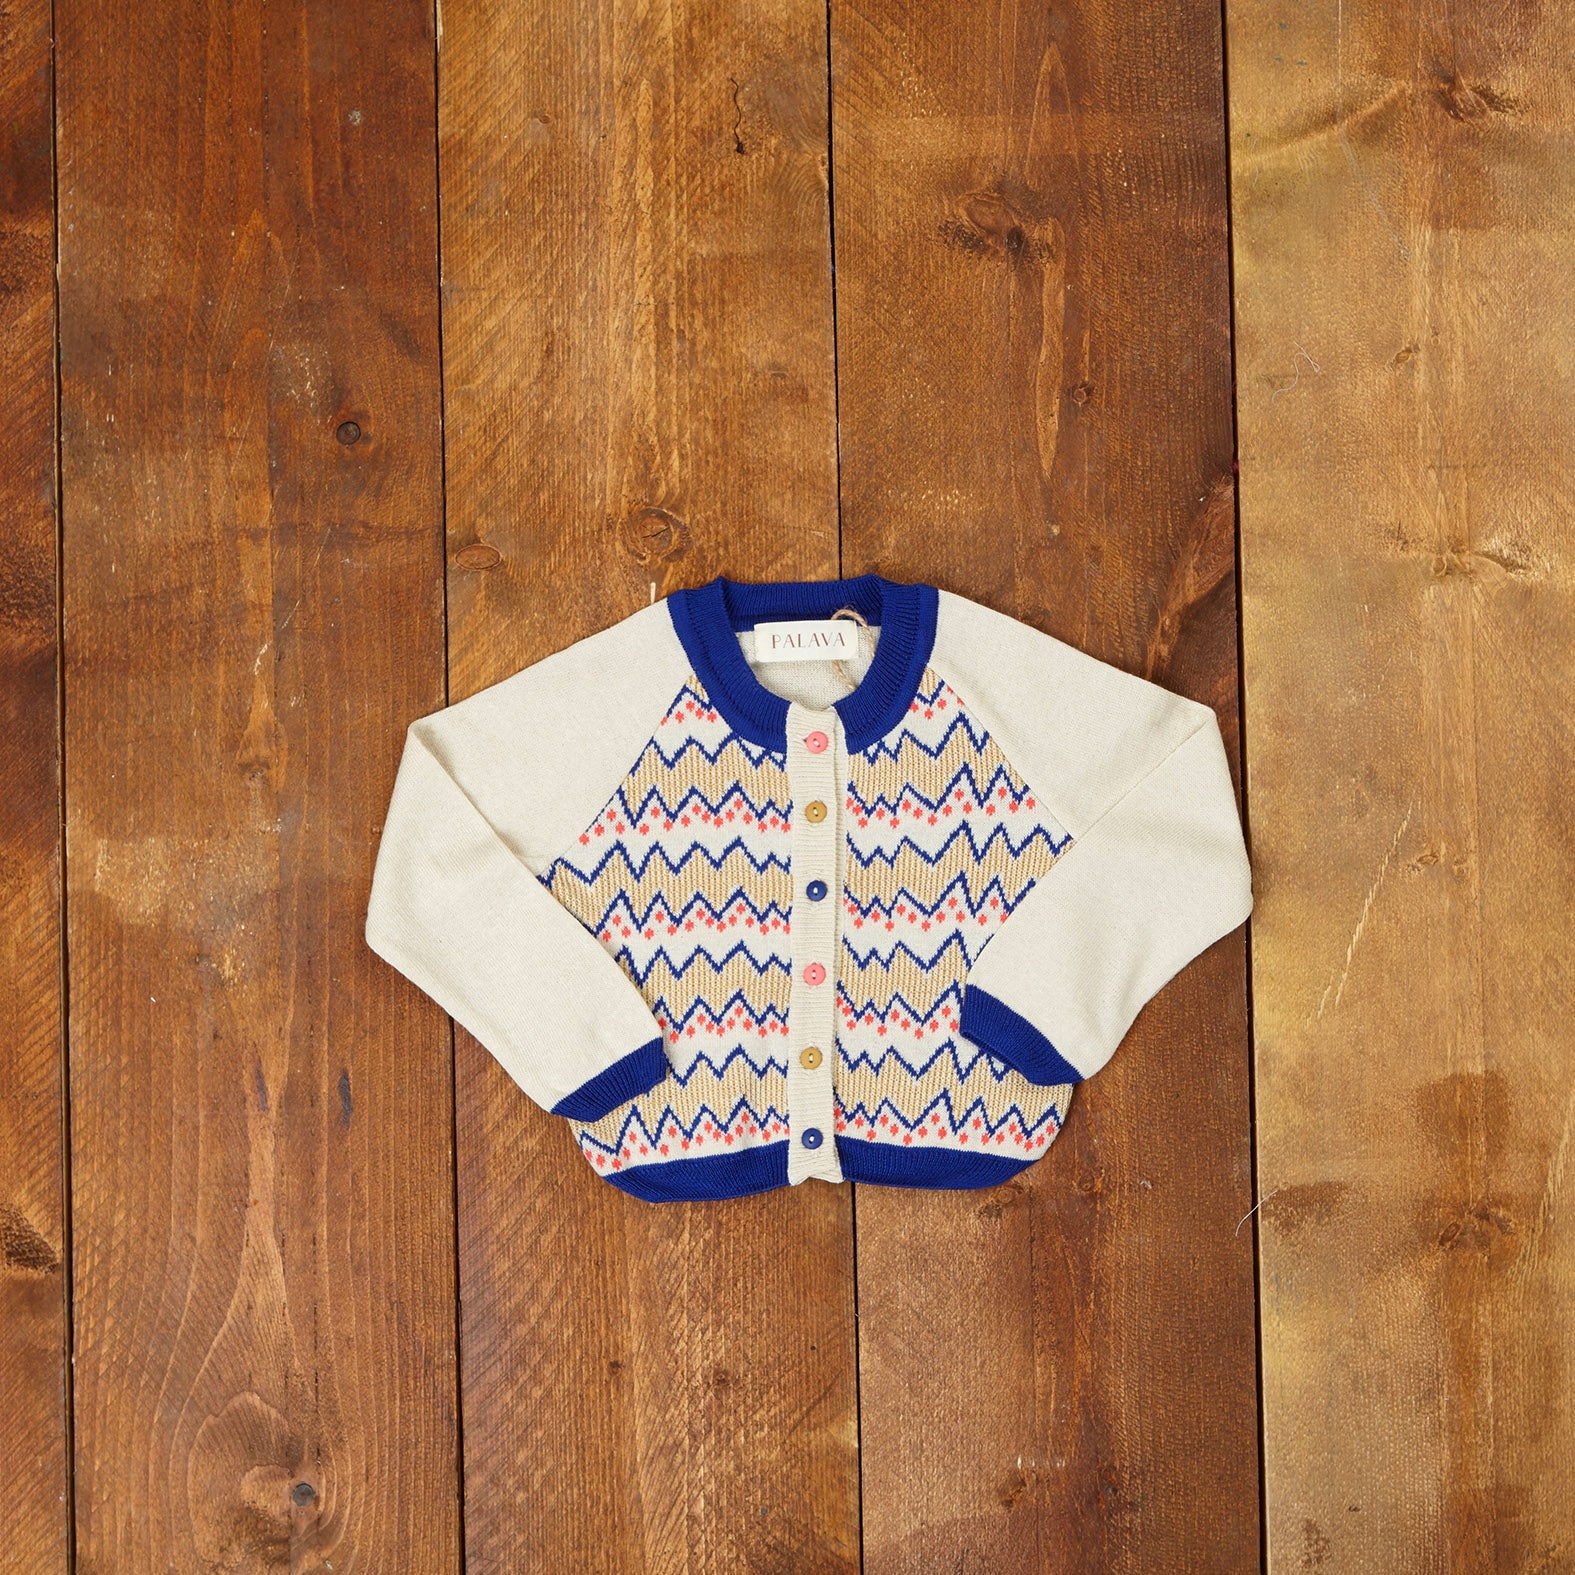 Children's Cardigan - Cream Zig Zag - Palava